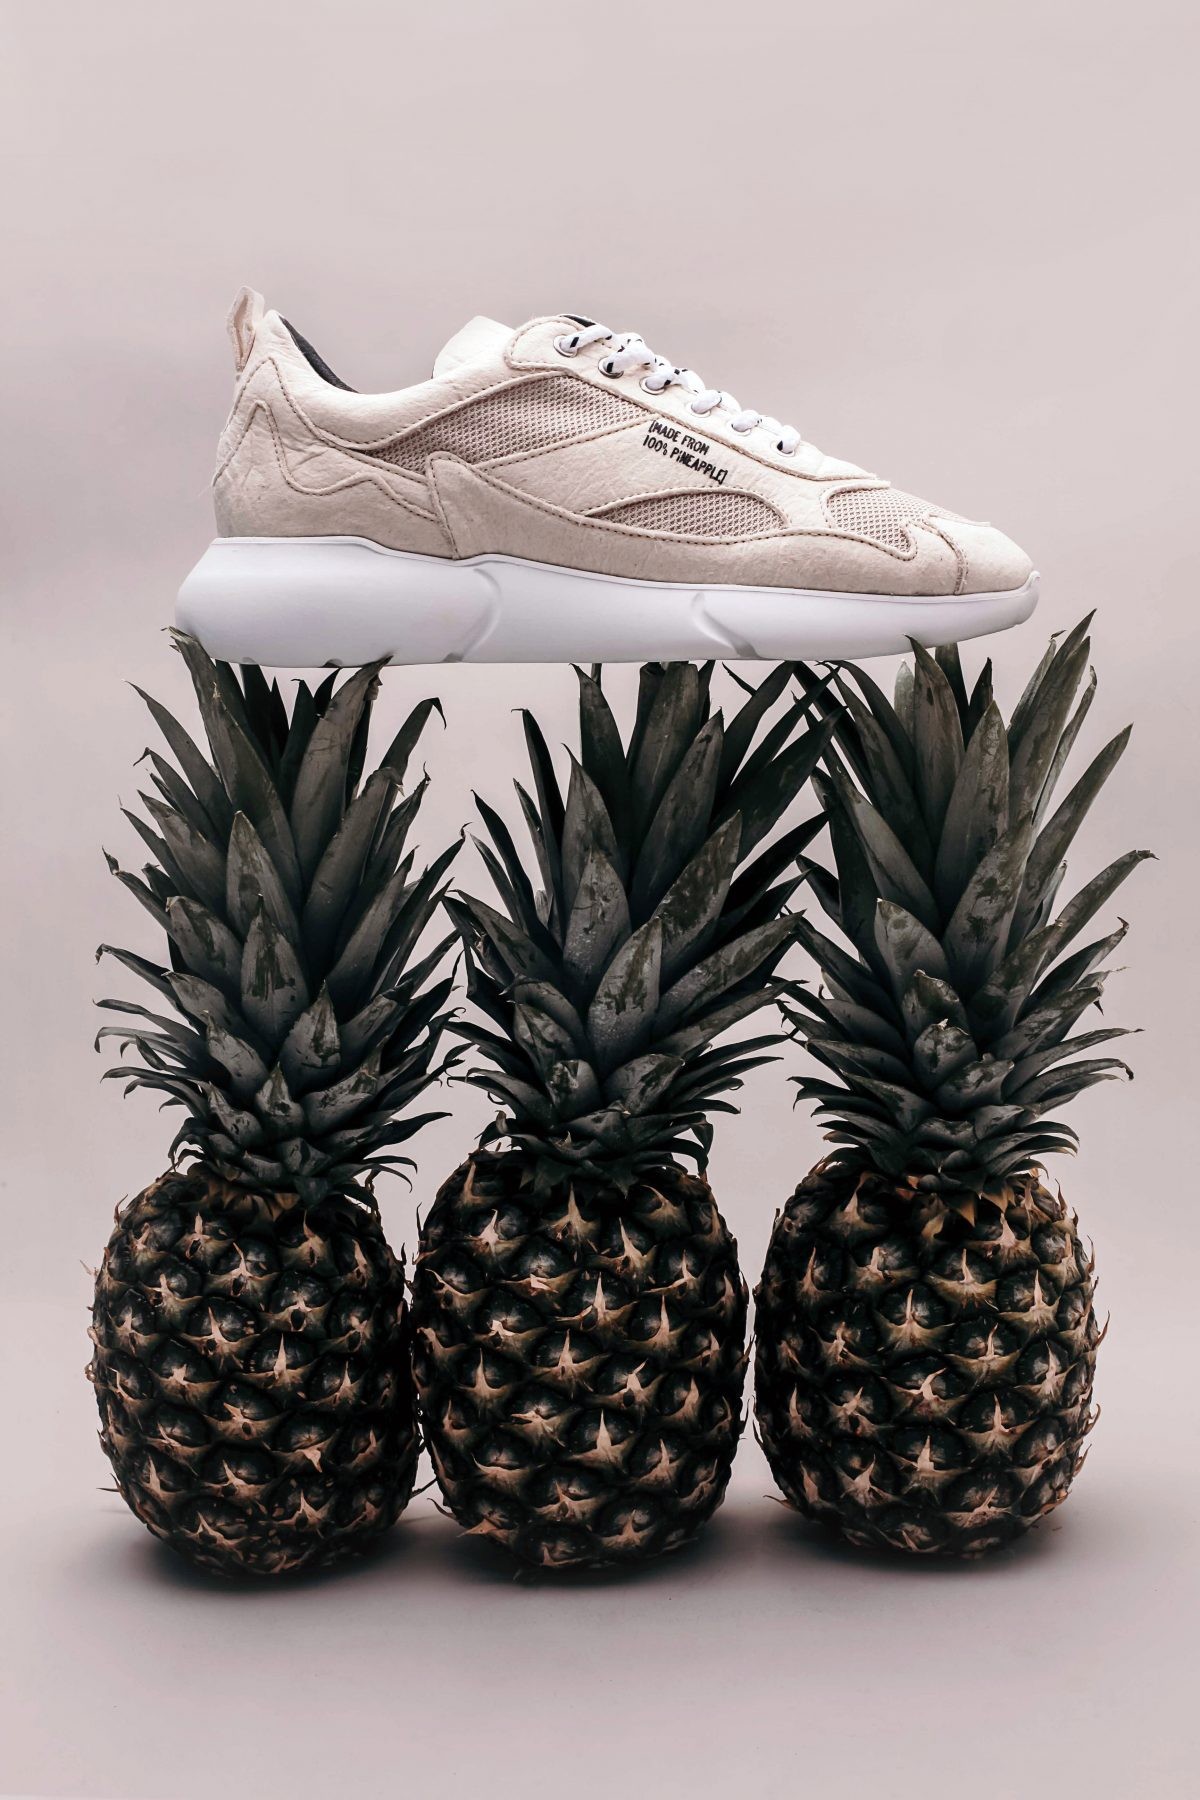 You can stunt on the 'Gram with these vegan trainers made from pineapples